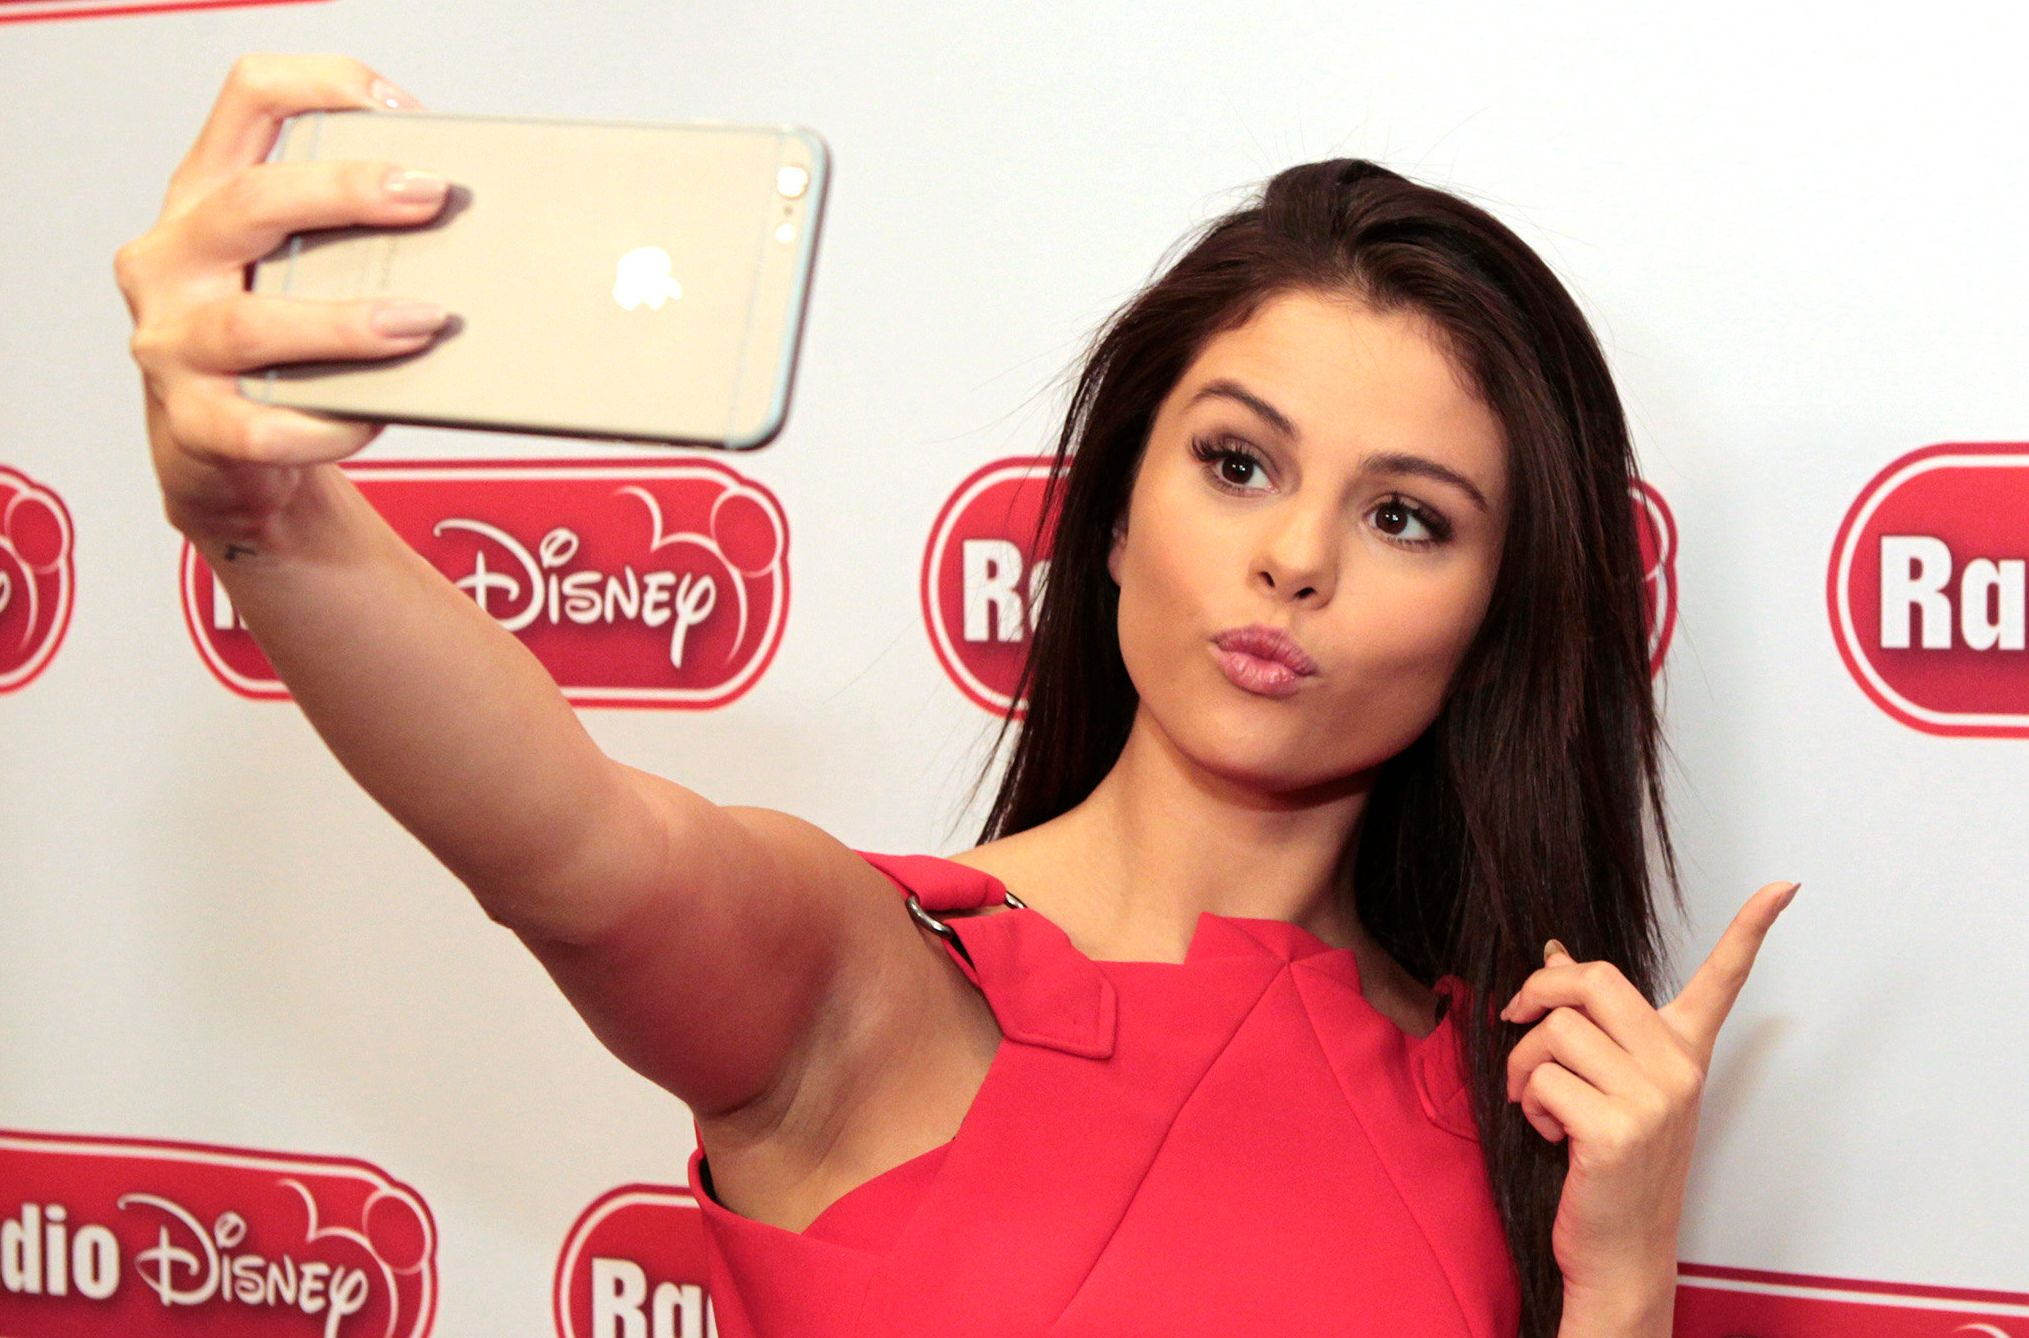 Selena Gomez officially becomes the most-followed celebrity on Instagram